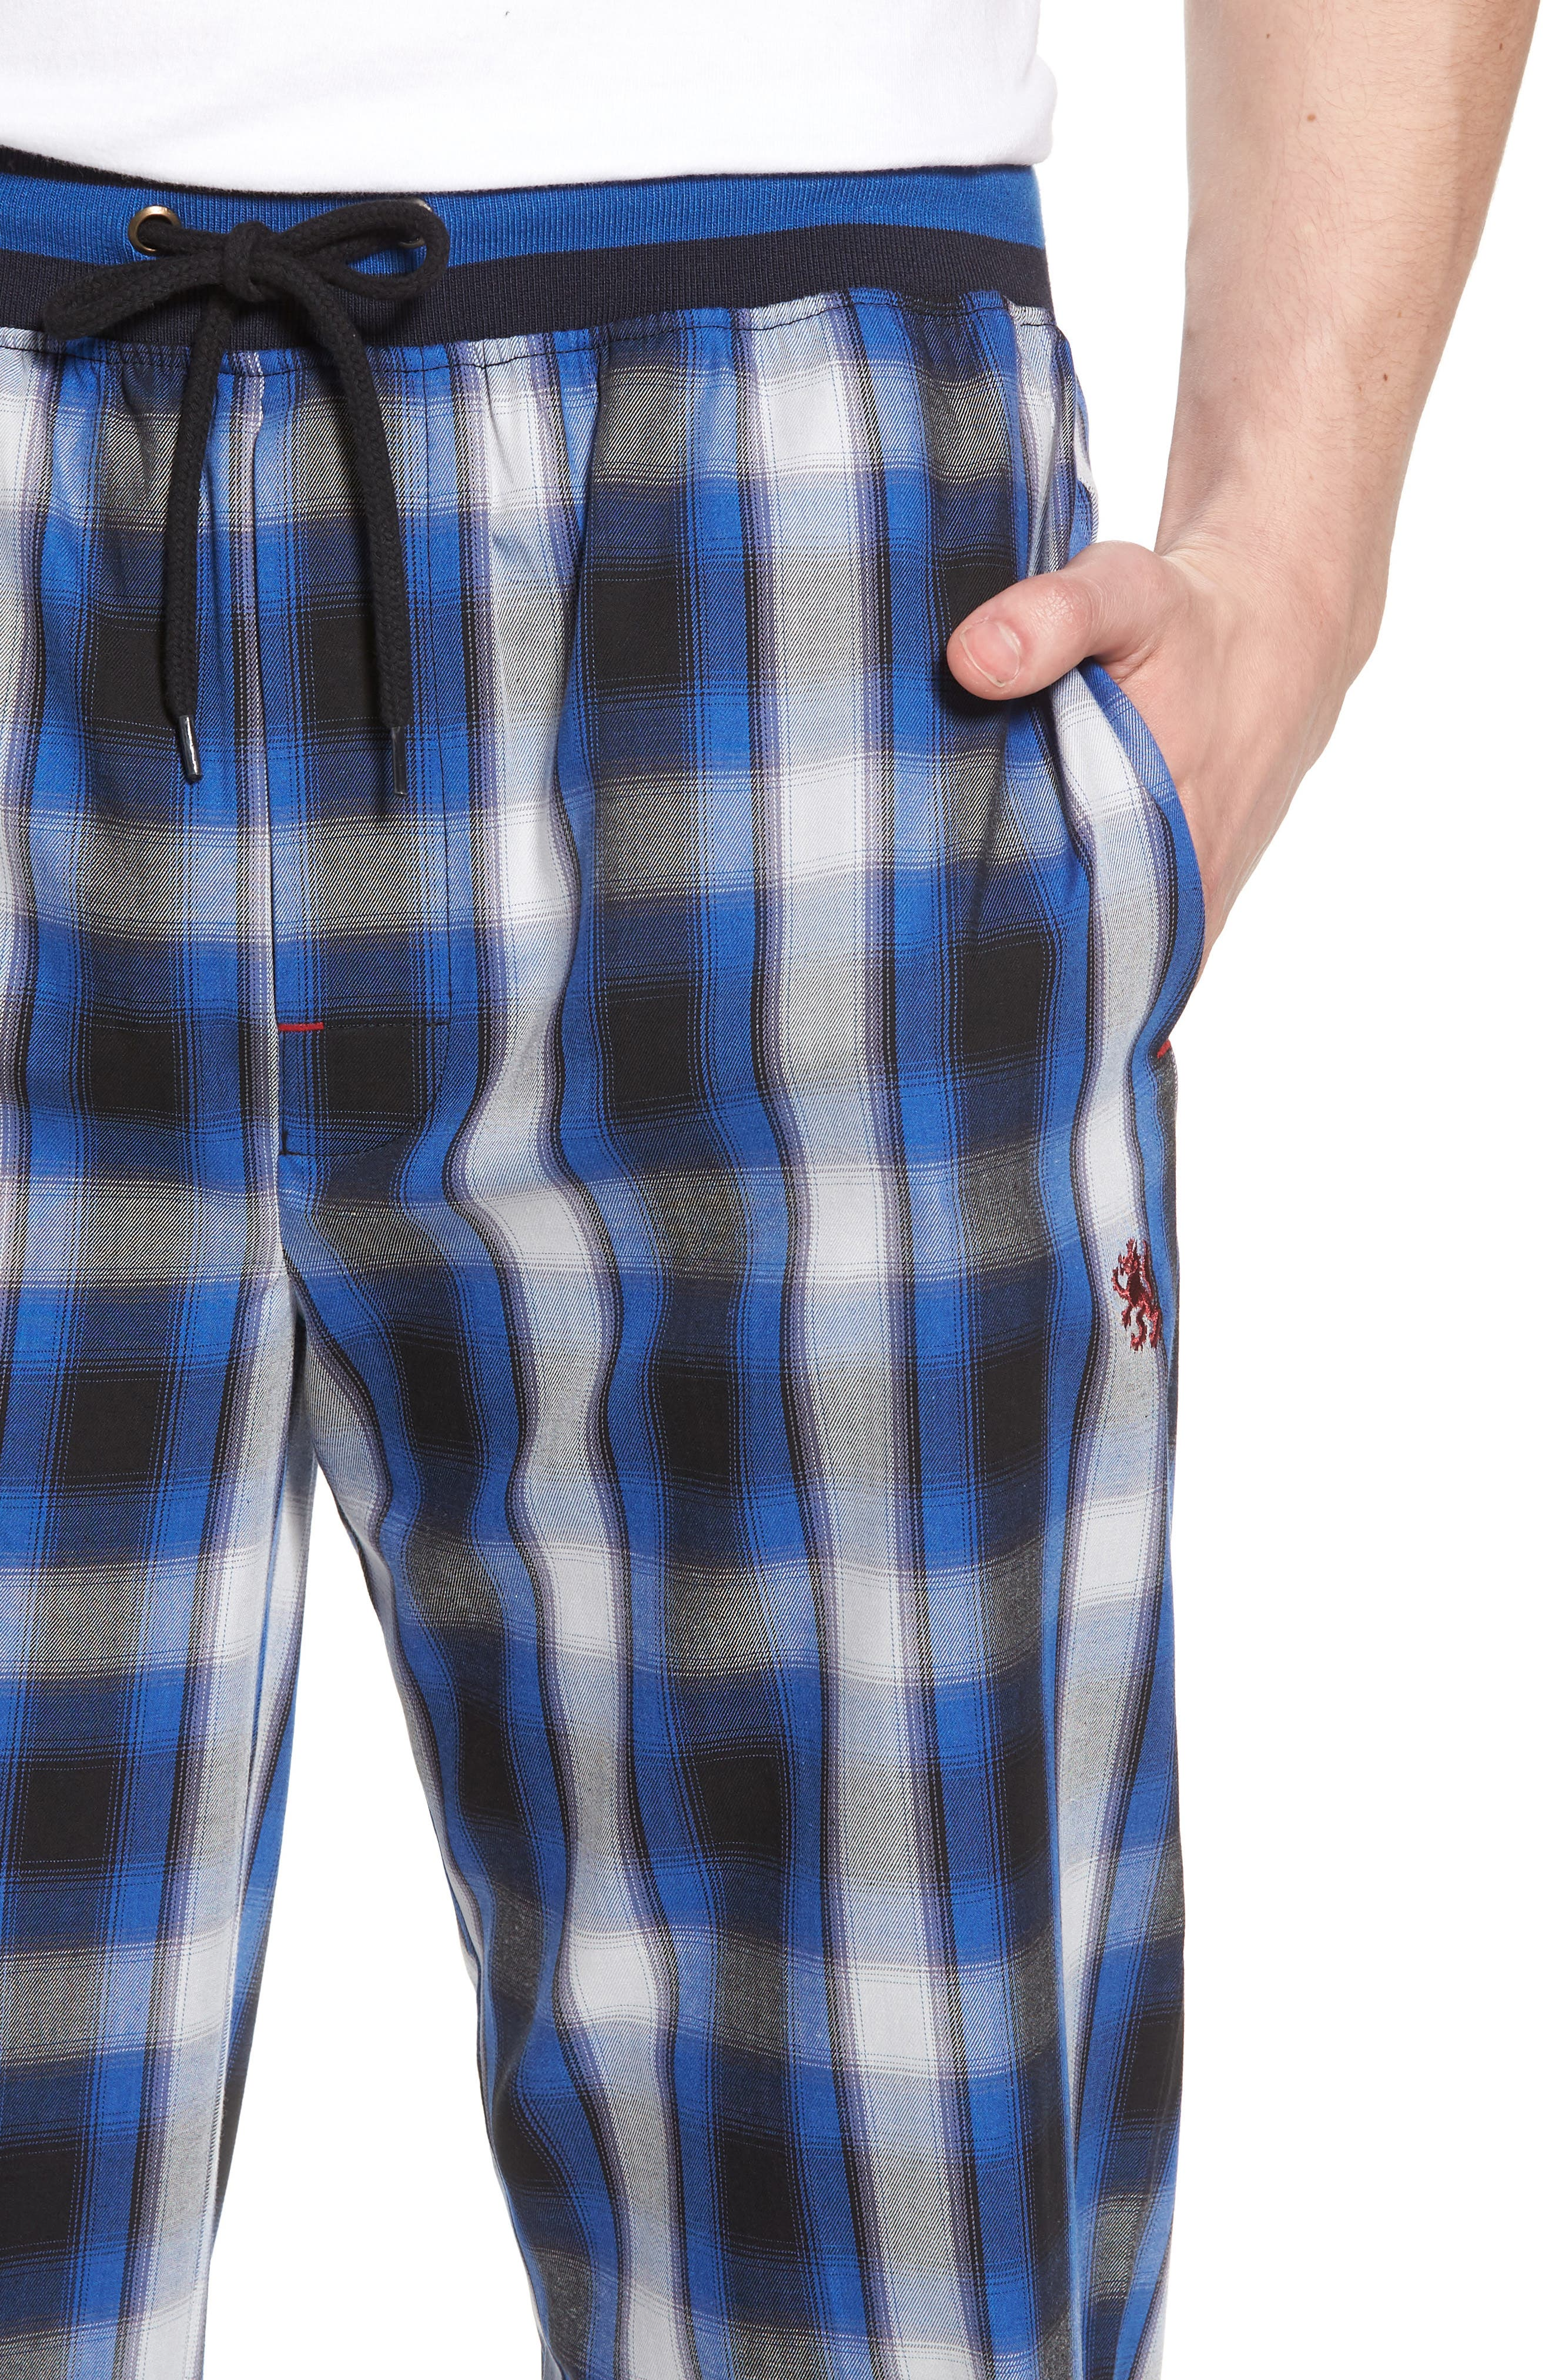 Urbane Lounge Pants,                             Alternate thumbnail 4, color,                             001